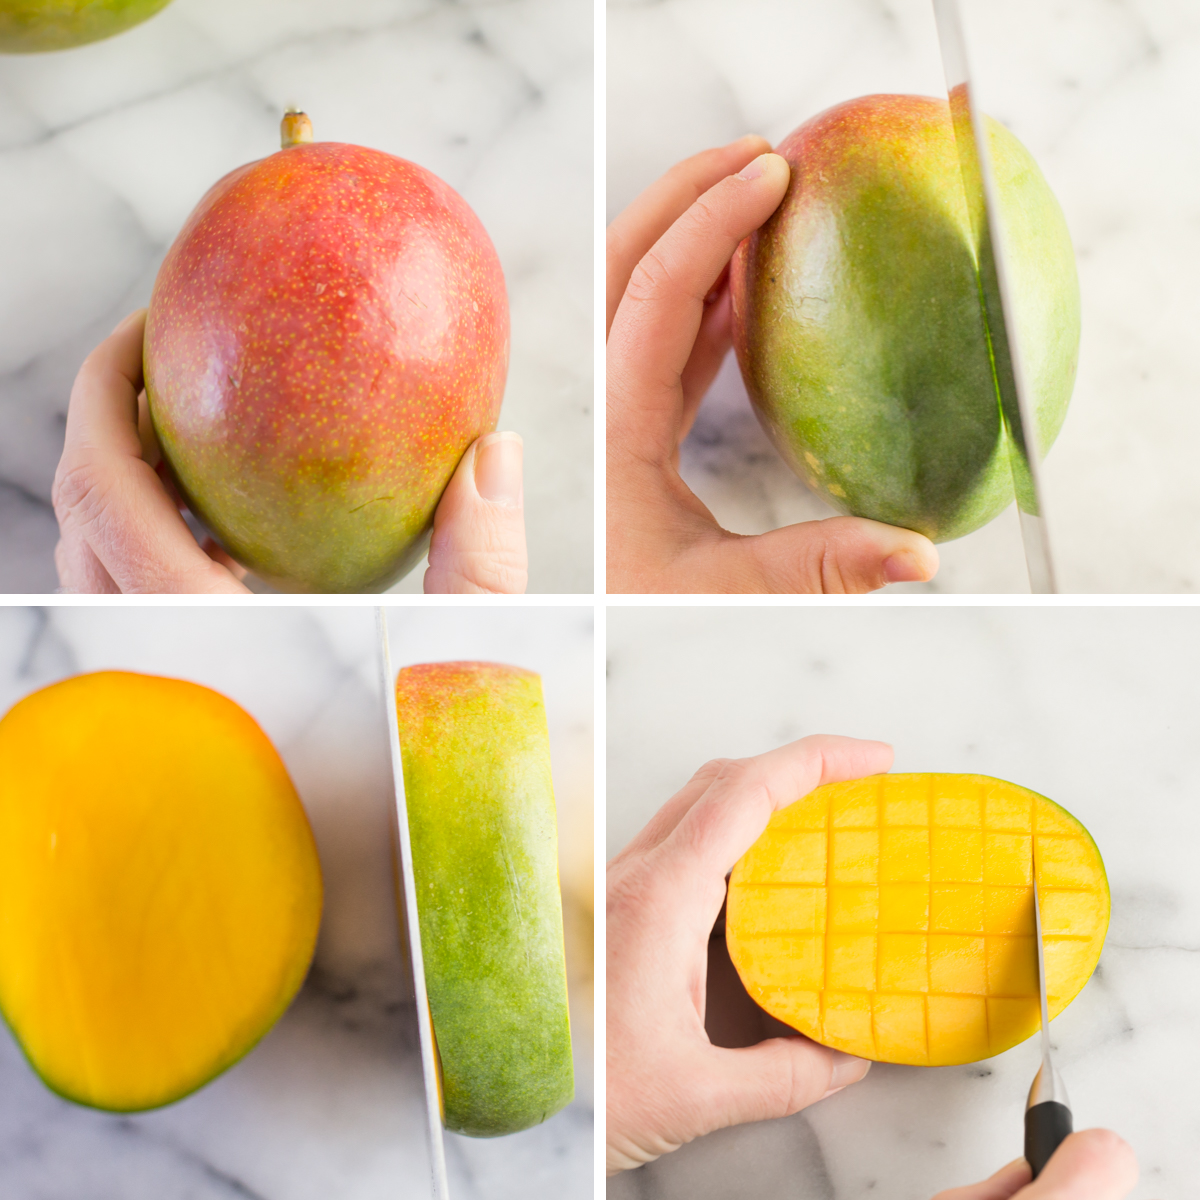 Step by step pictures for how to cut and dice a fresh mango on a white marble background.